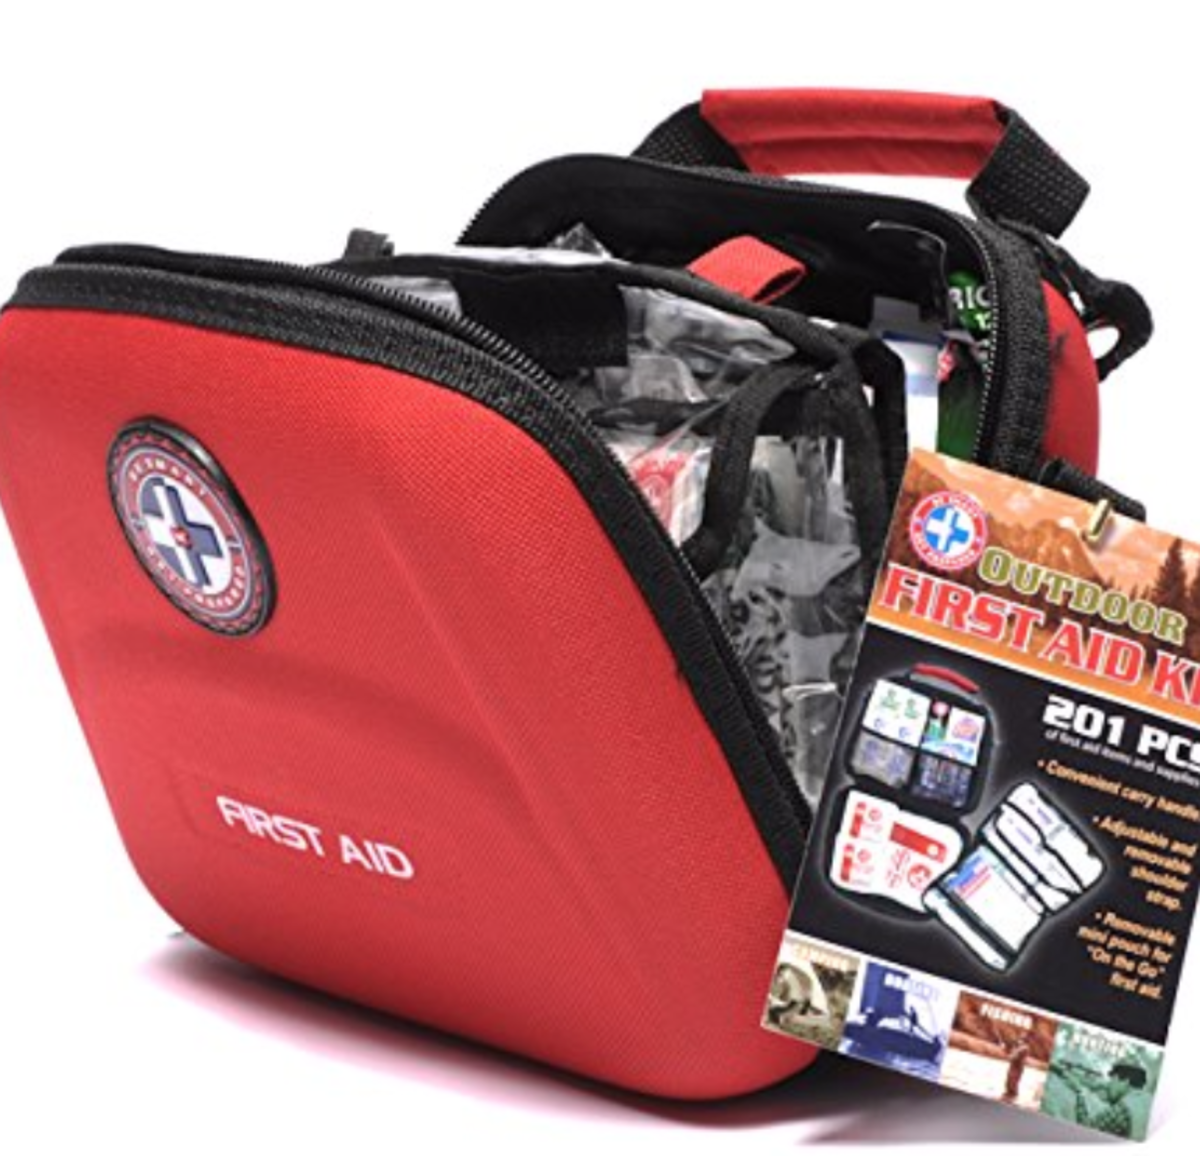 You can see this 201 piece Outdoor Safety Kit by clicking the link in the text to the left.